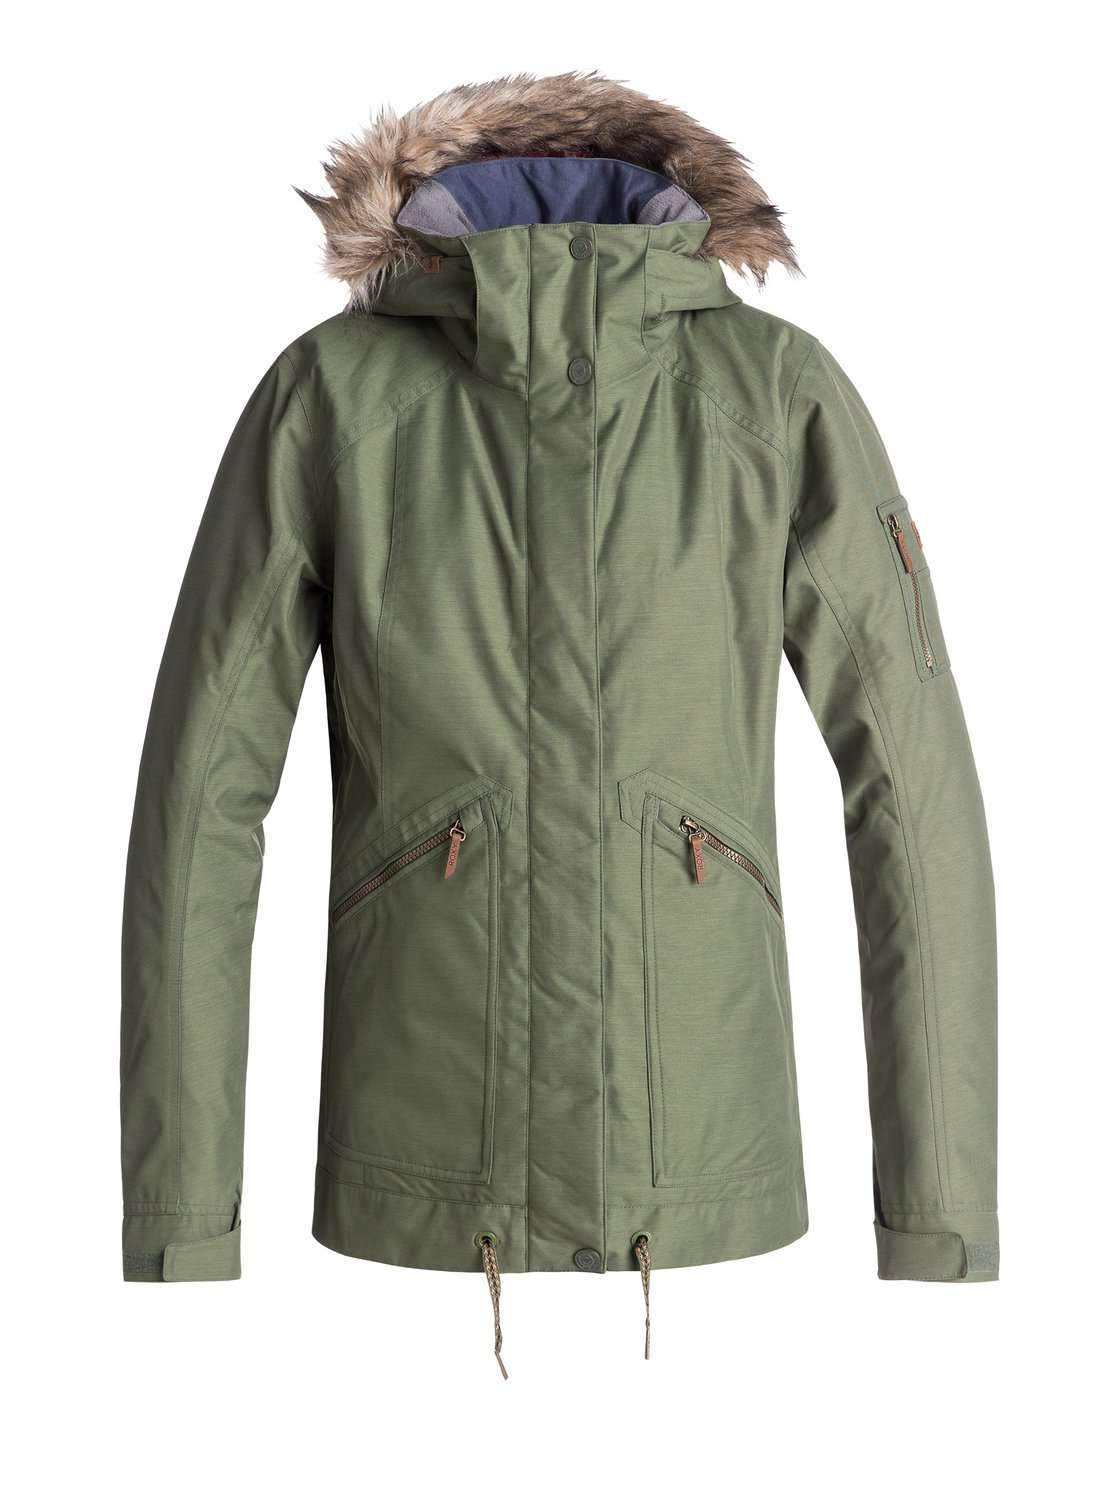 Roxy Meade Womens Snow Jacket Olive-Snow Jacket - Womens-ROXY-S-Trojan Wake Ski Snow